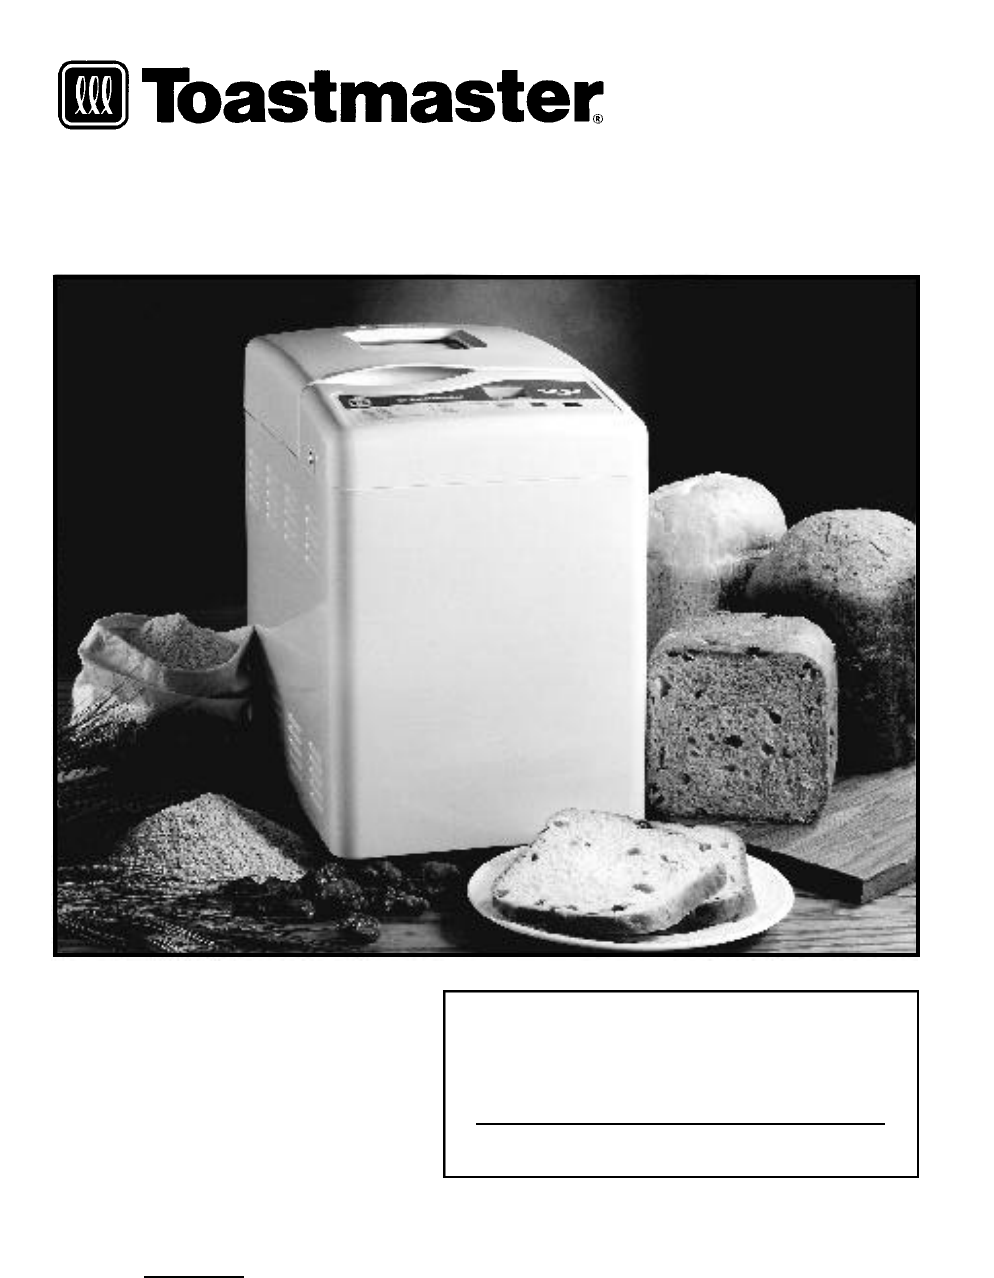 toastmaster bread box 1172 manual